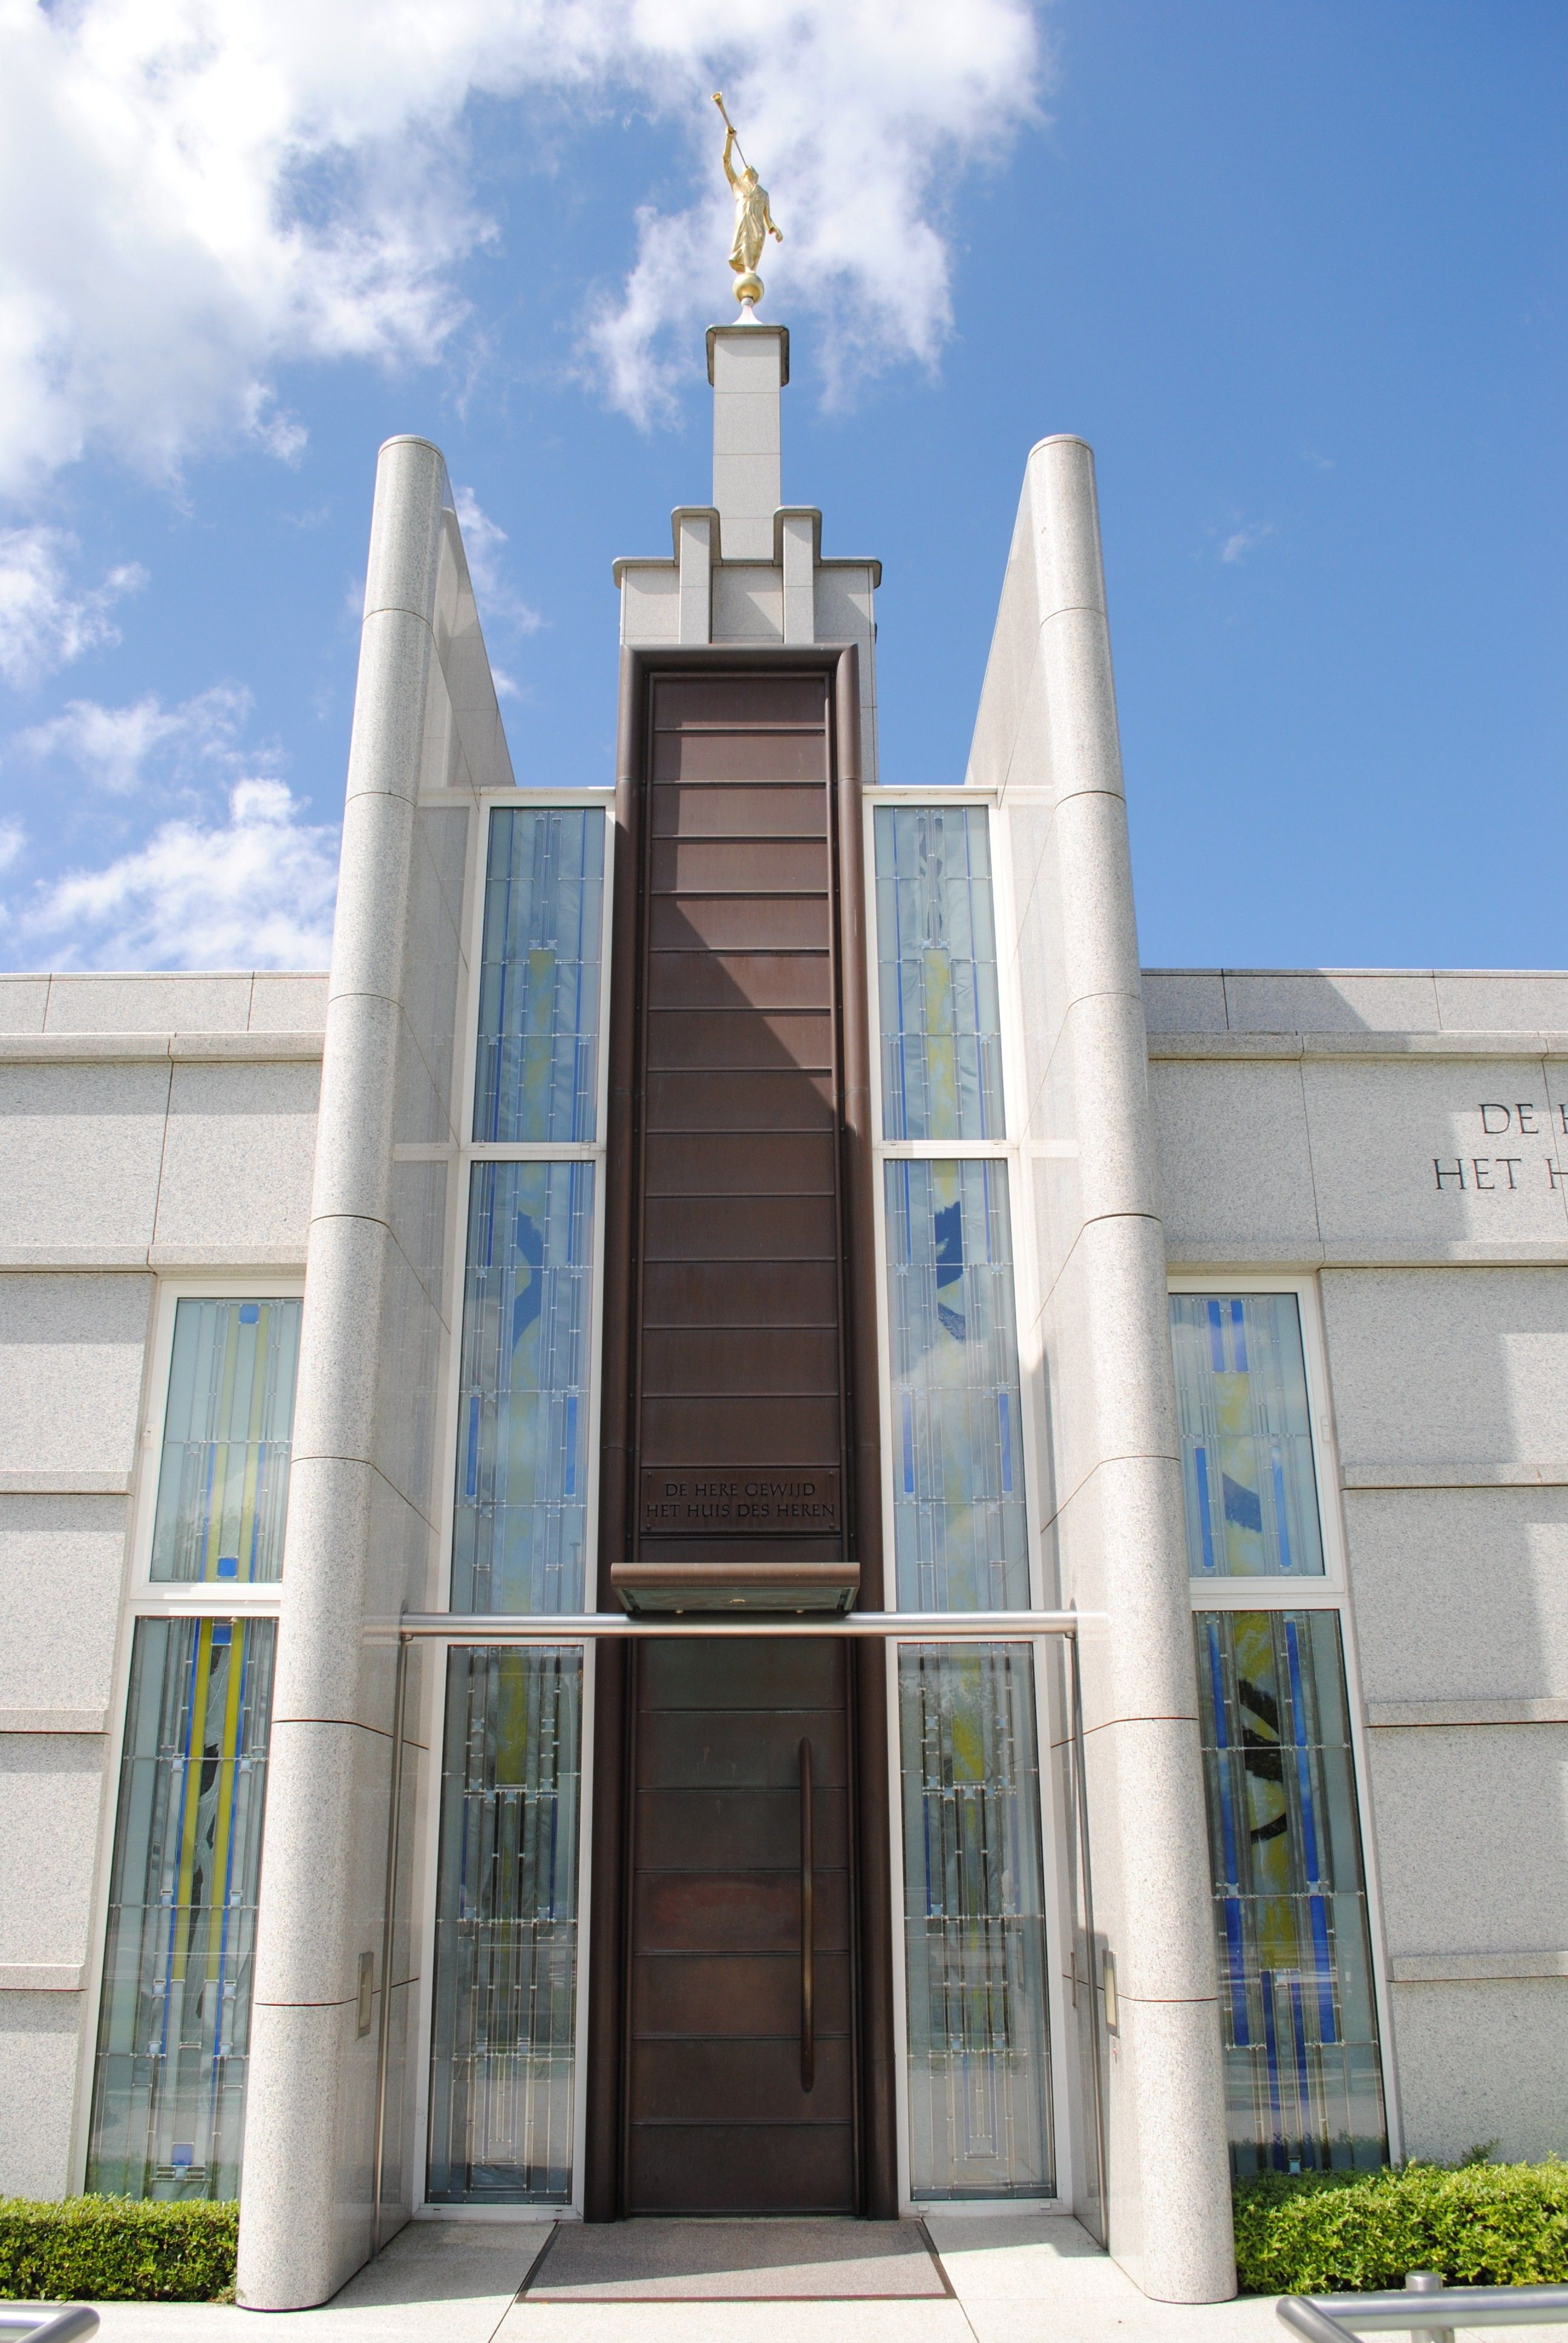 The Hague Netherlands Temple windows, including the door and spire.